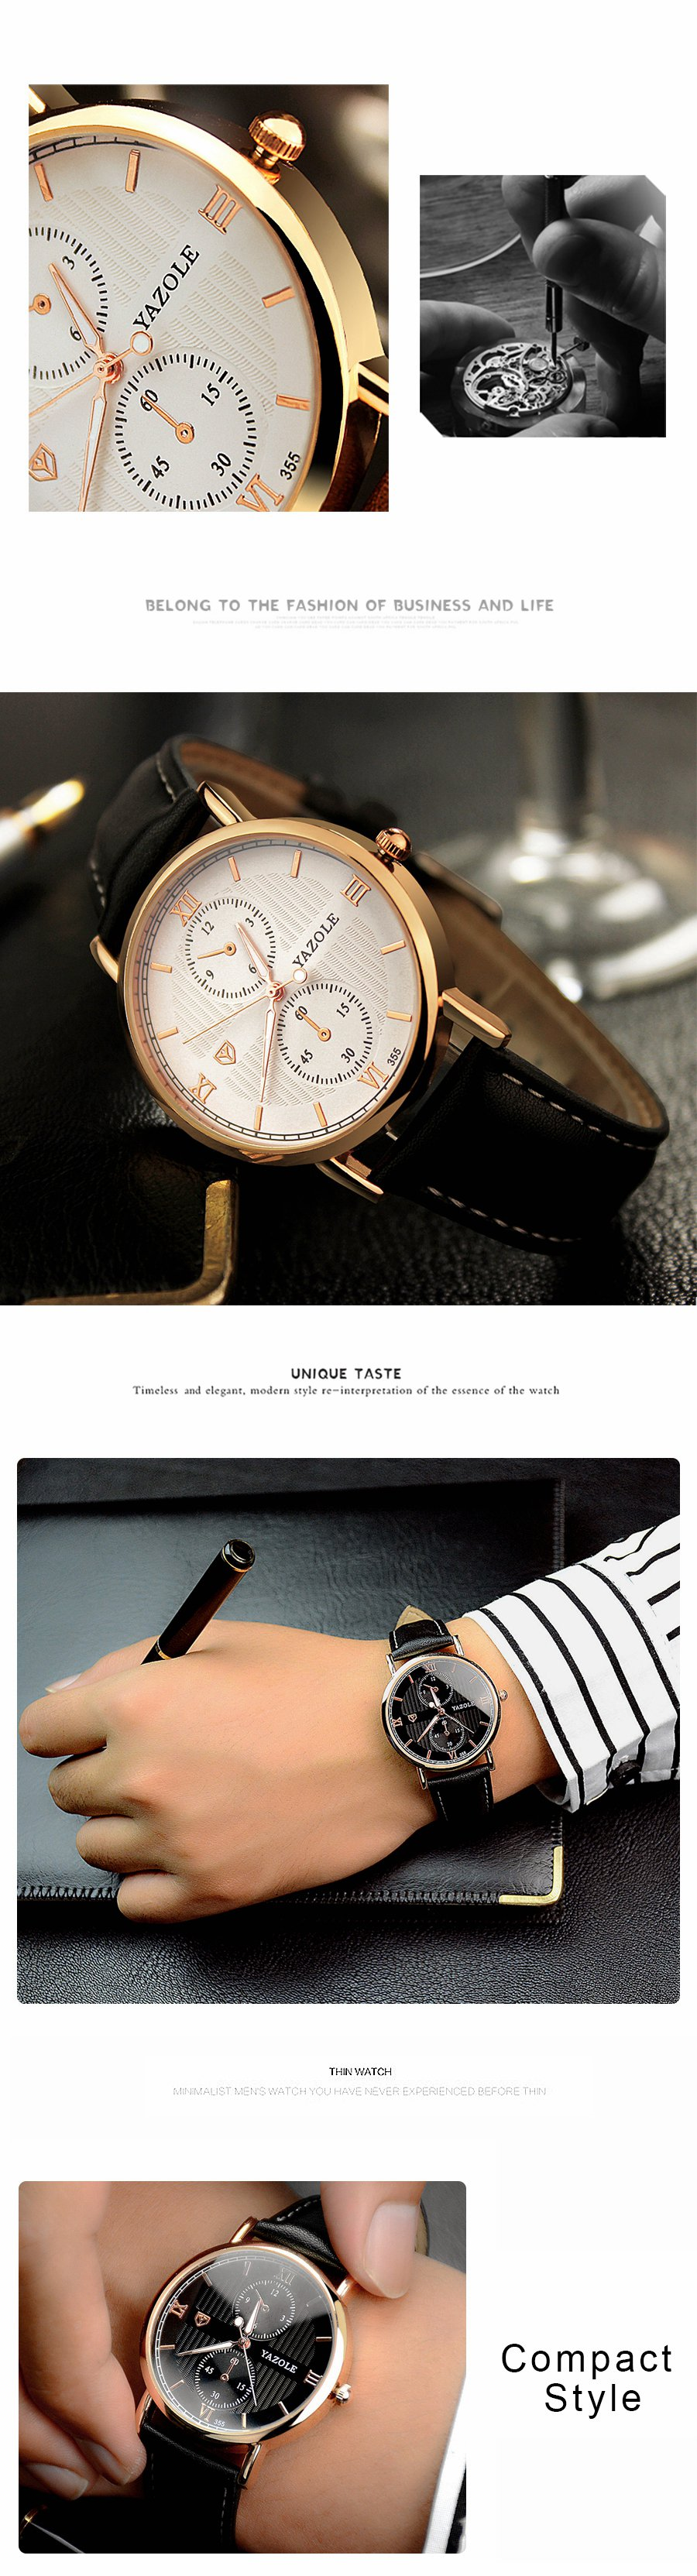 YAZOLE 355 Luminous Fashion Leather Strap Quartz Men Watch